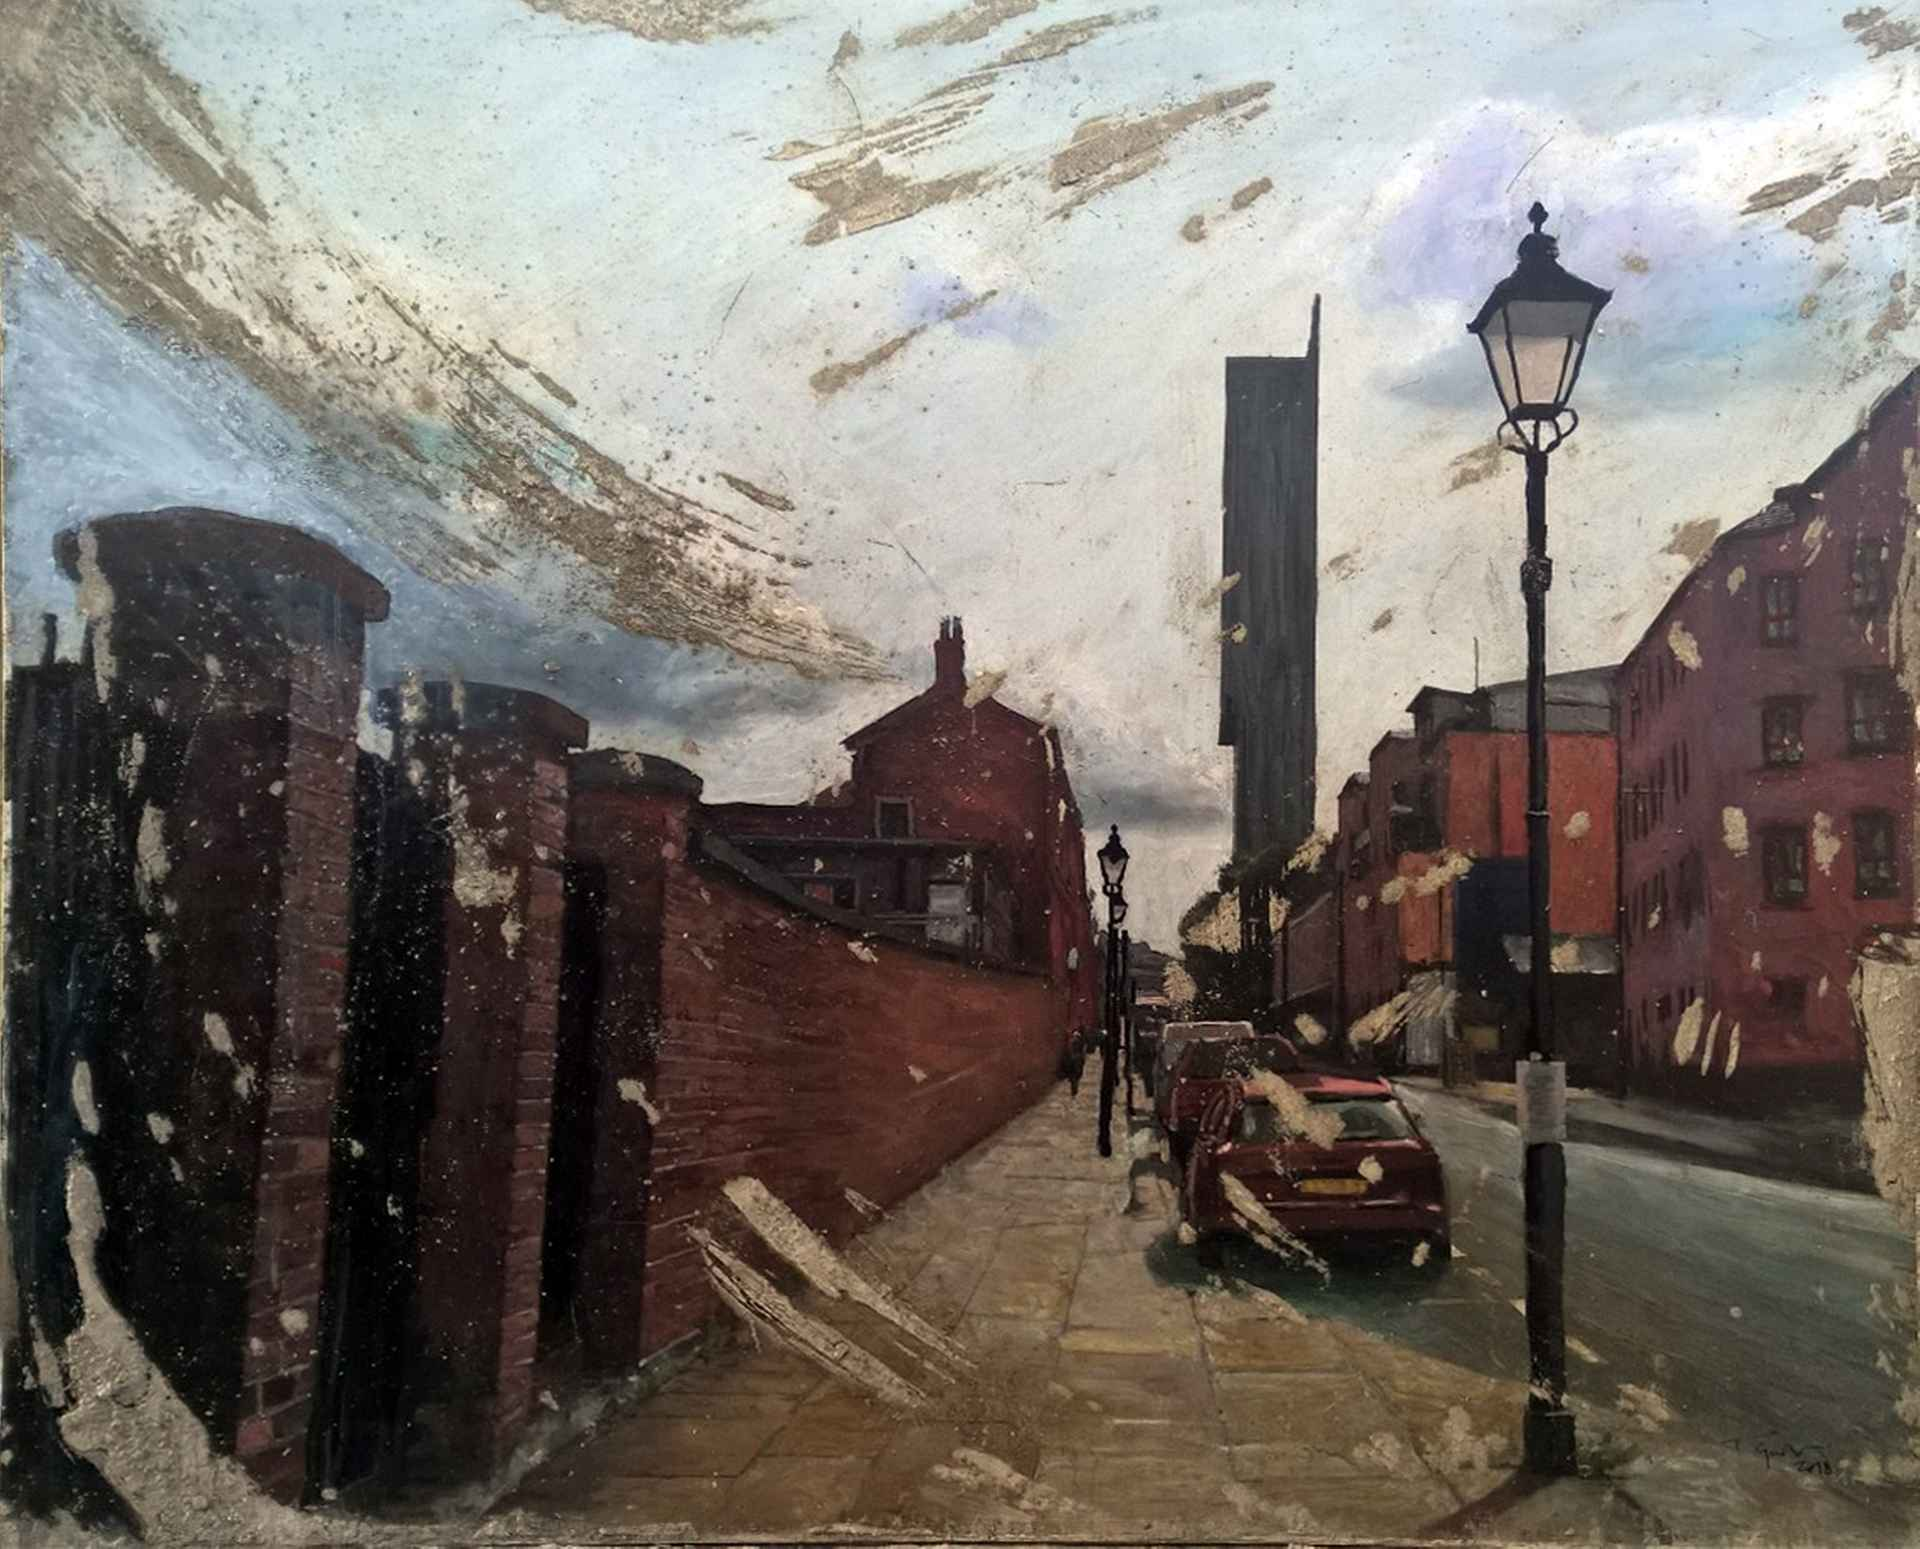 Liverpool Road by Tim Garner in Manctopia